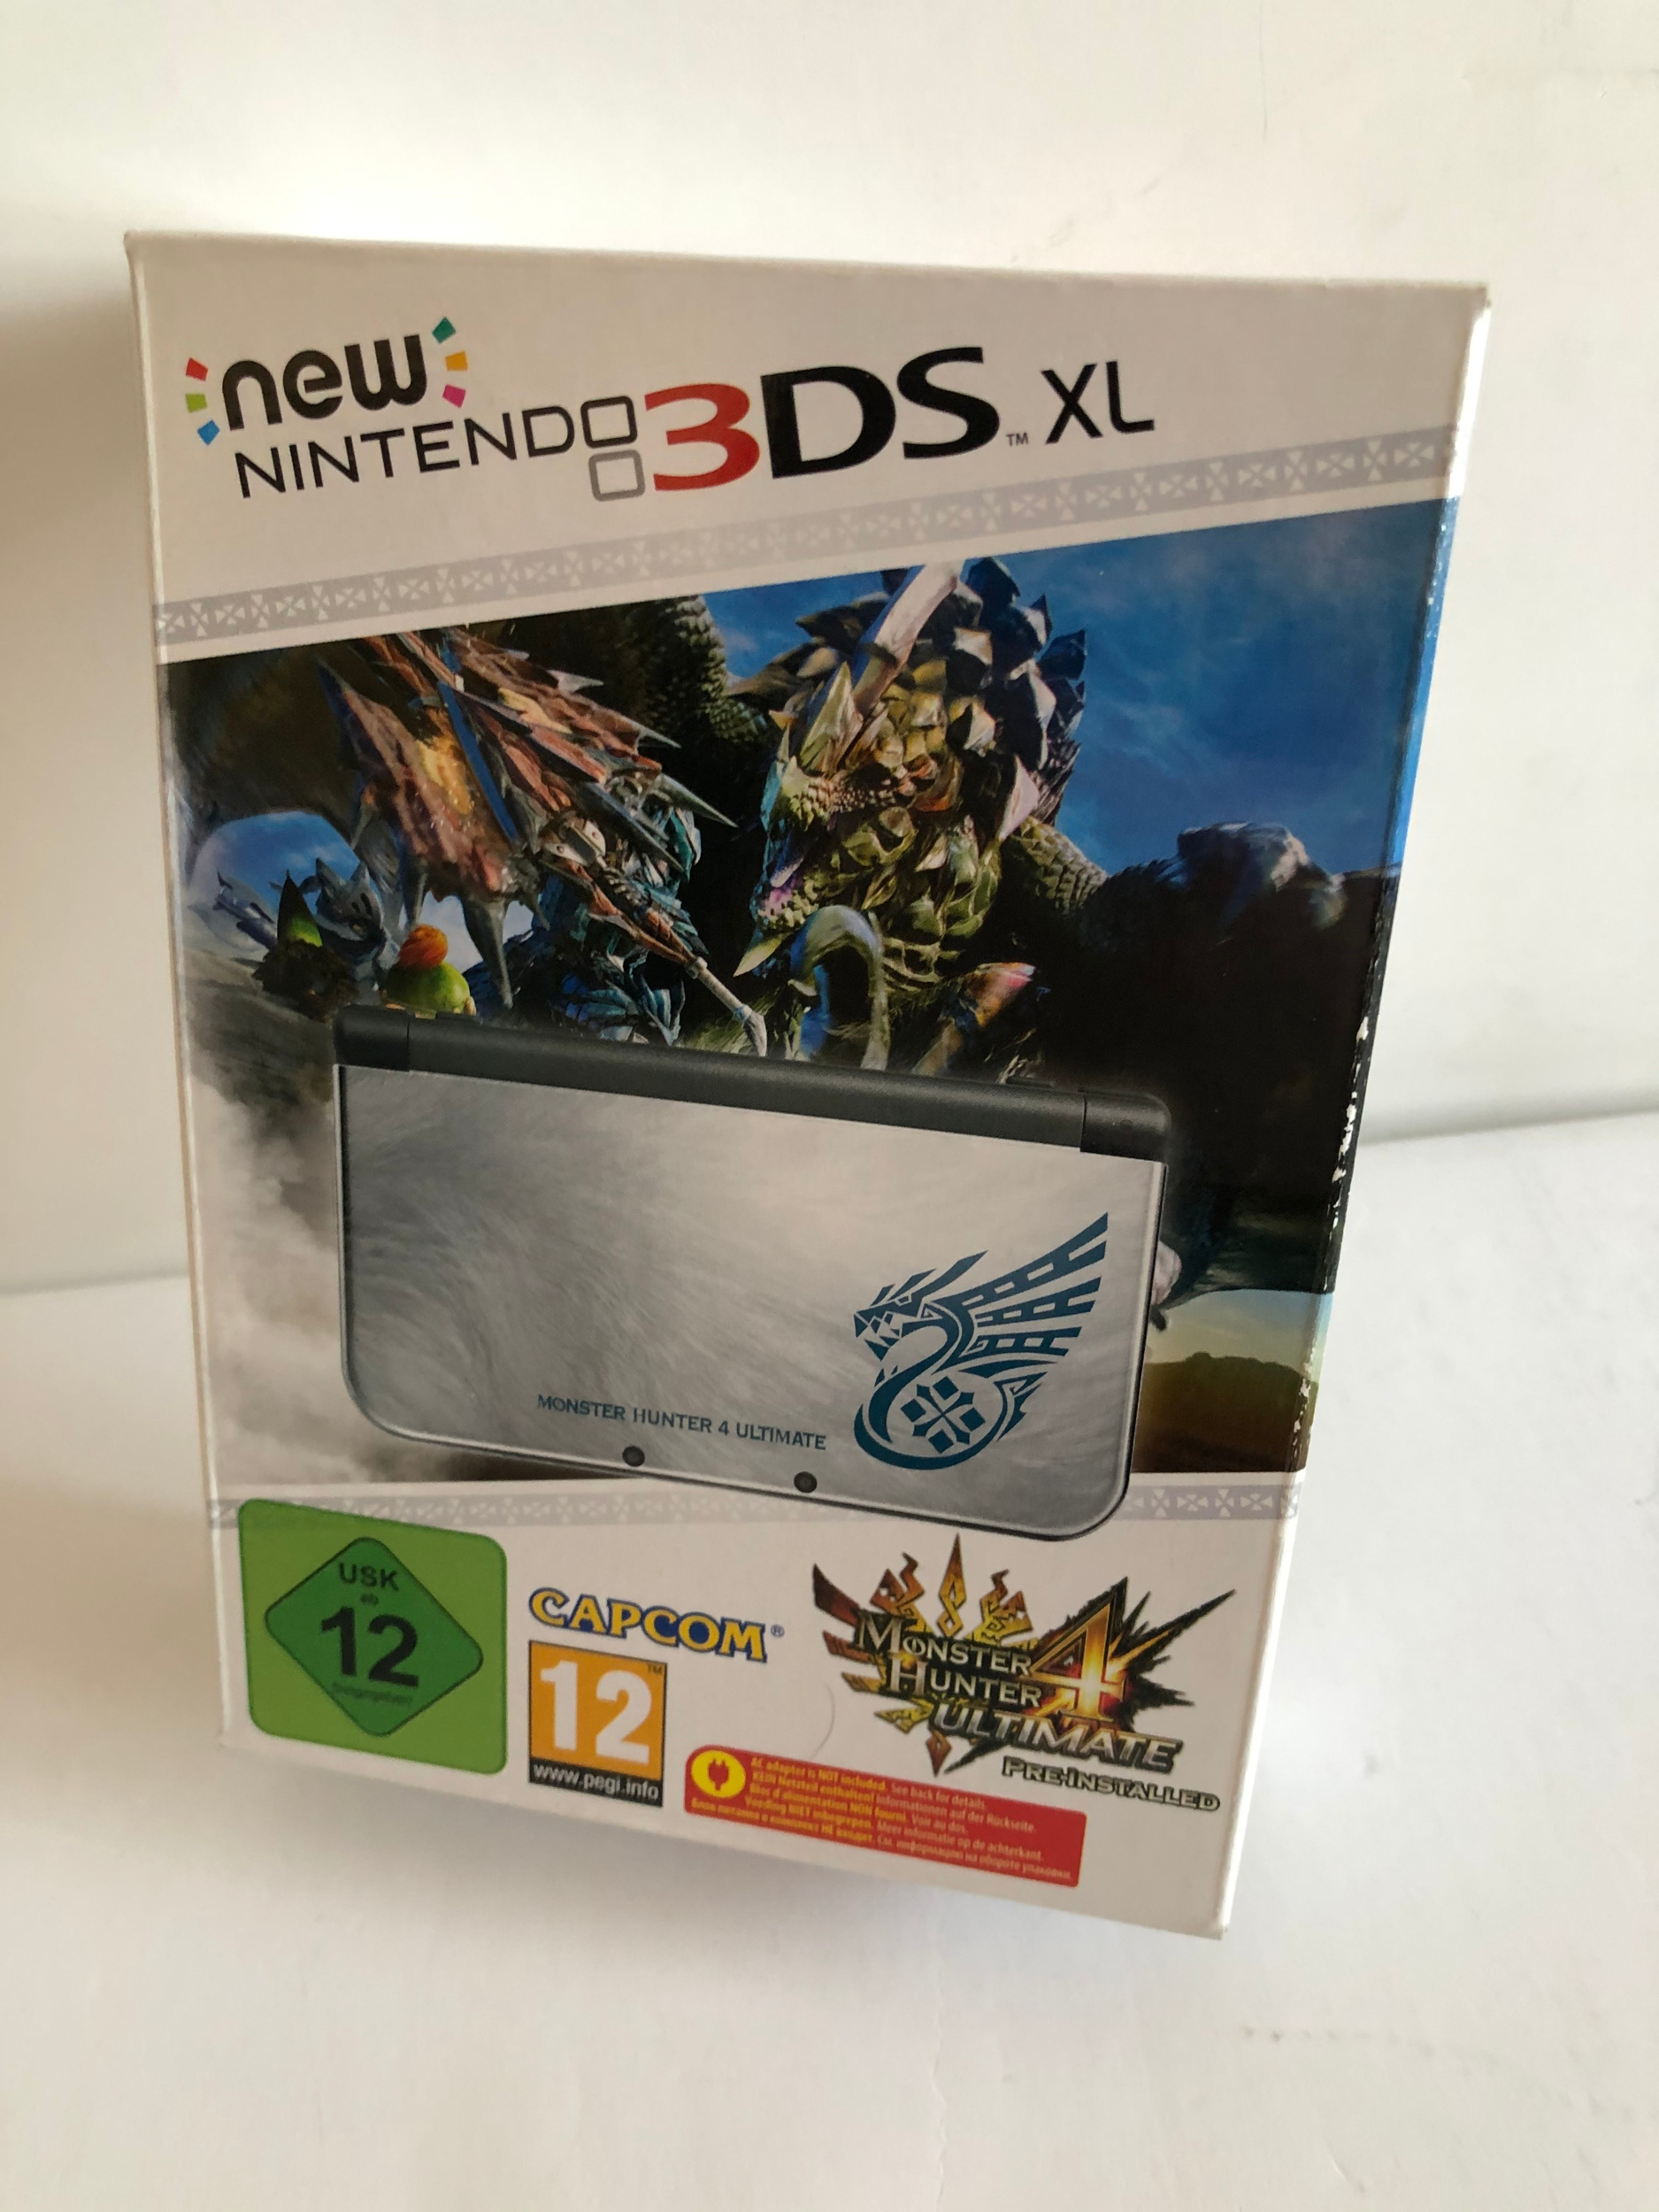 3DS XL console - Monster Hunter 4 Ultimate